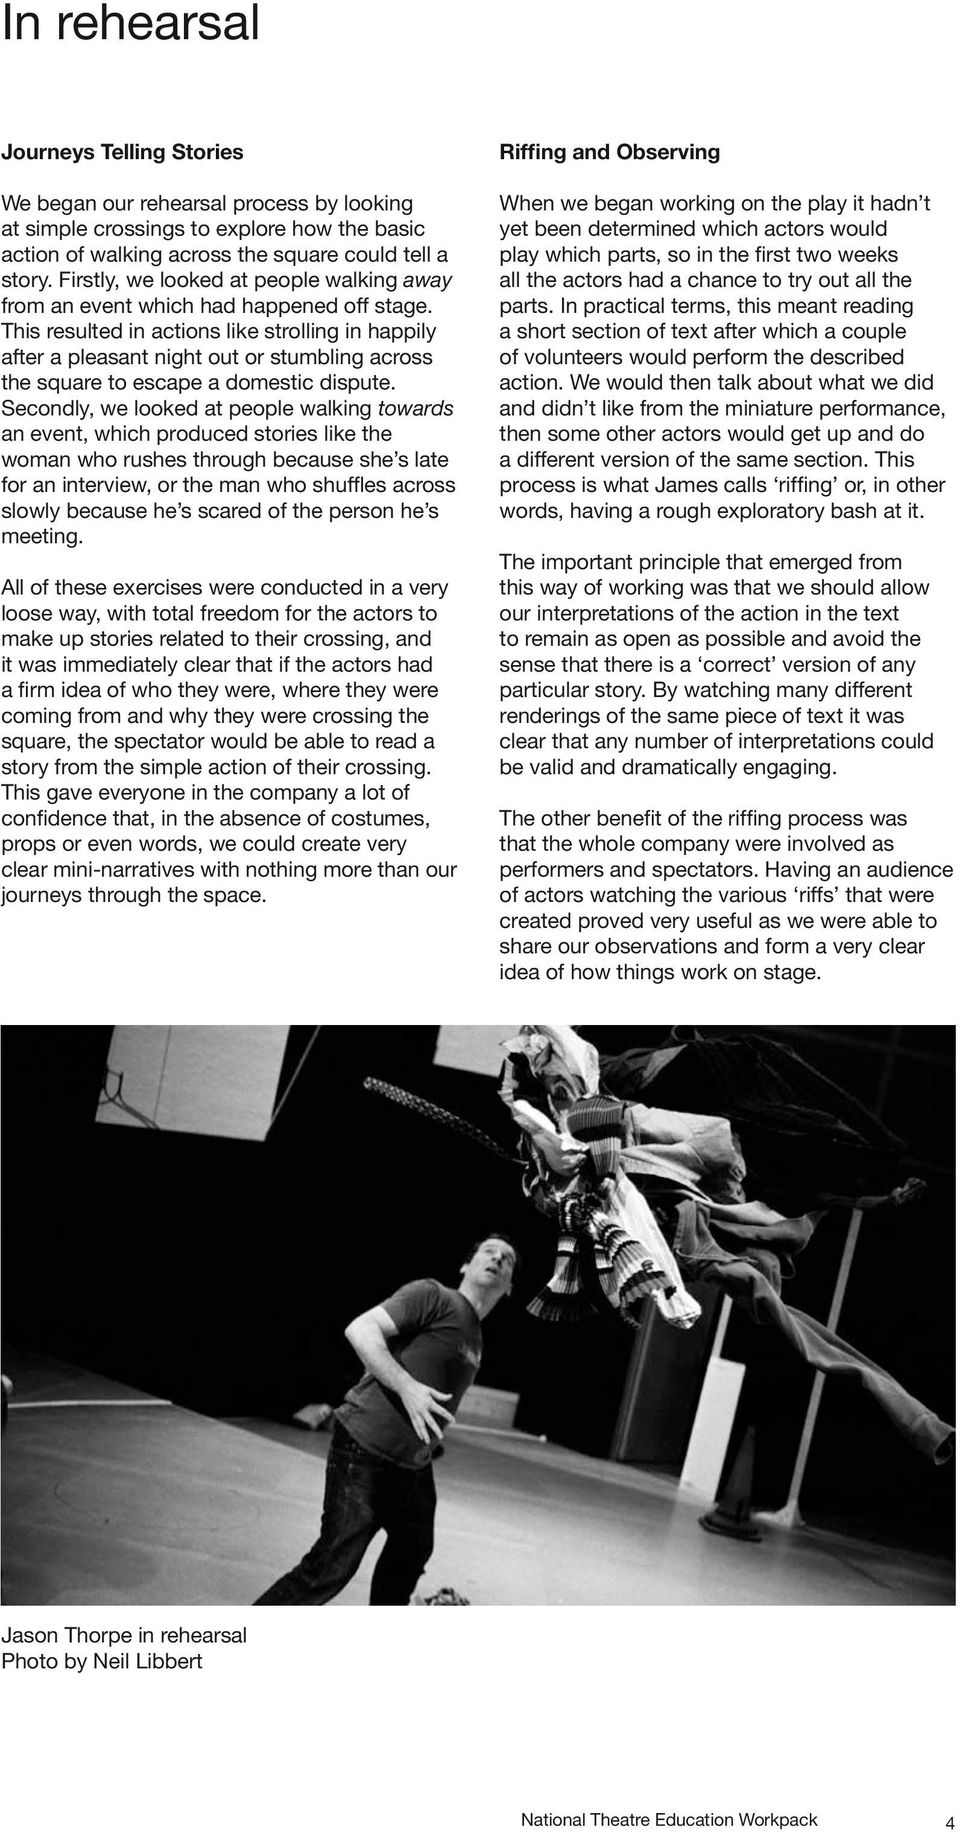 This resulted in actions like strolling in happily after a pleasant night out or stumbling across the square to escape a domestic dispute.